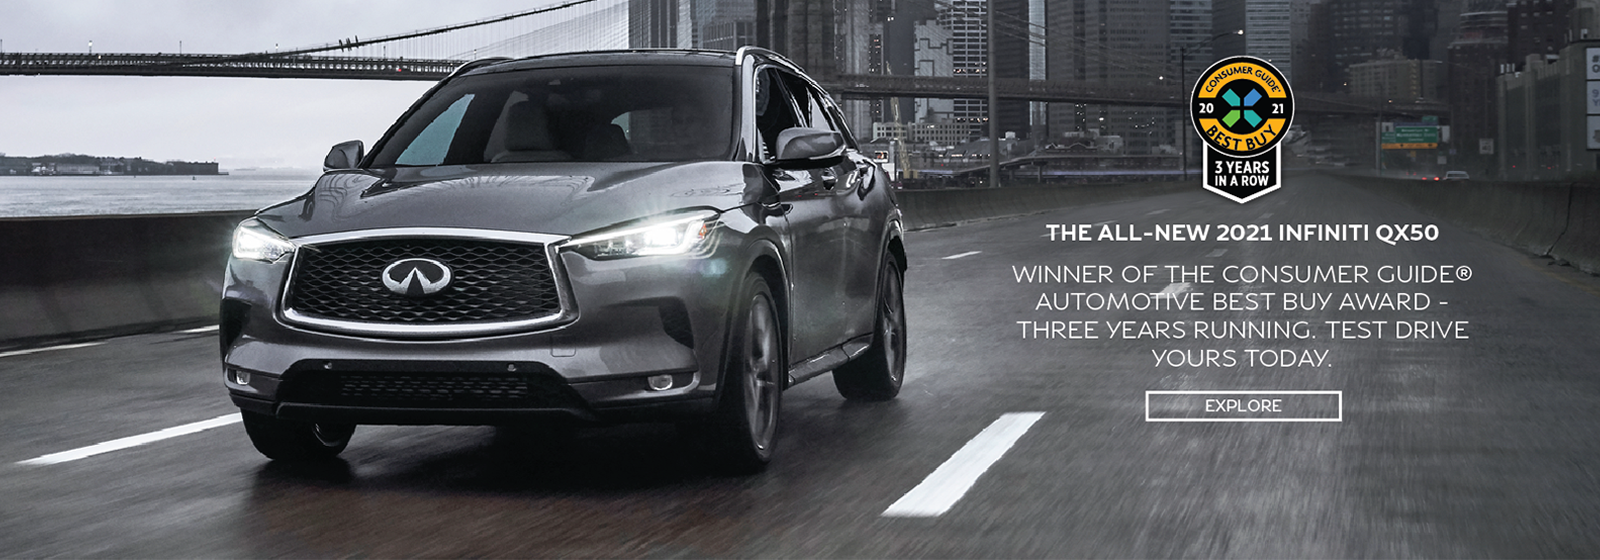 The all-new 2021 INFINITI qx50. Winner of the consumer guide automotive best buy award three years running. Test drive yours today. Click to explore.